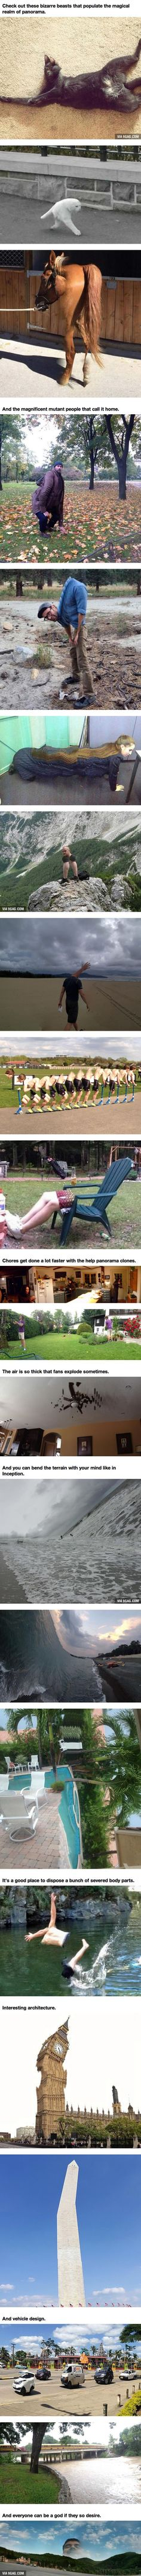 Failed Panorama Photography Turns The World Into A Creepy But Interesting Place